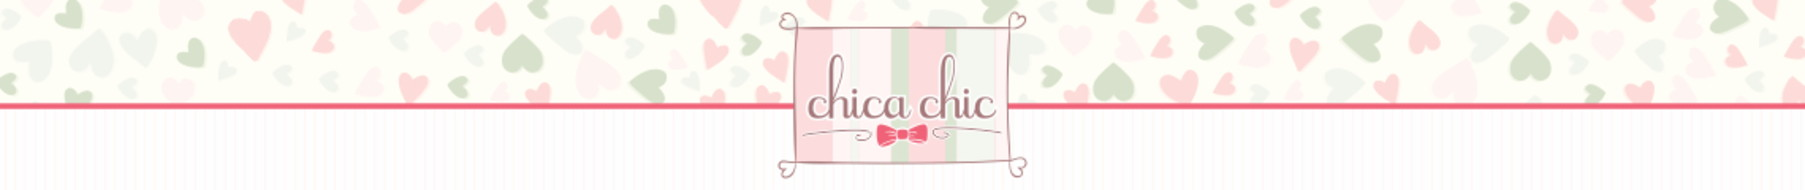 Chica Chic Laços